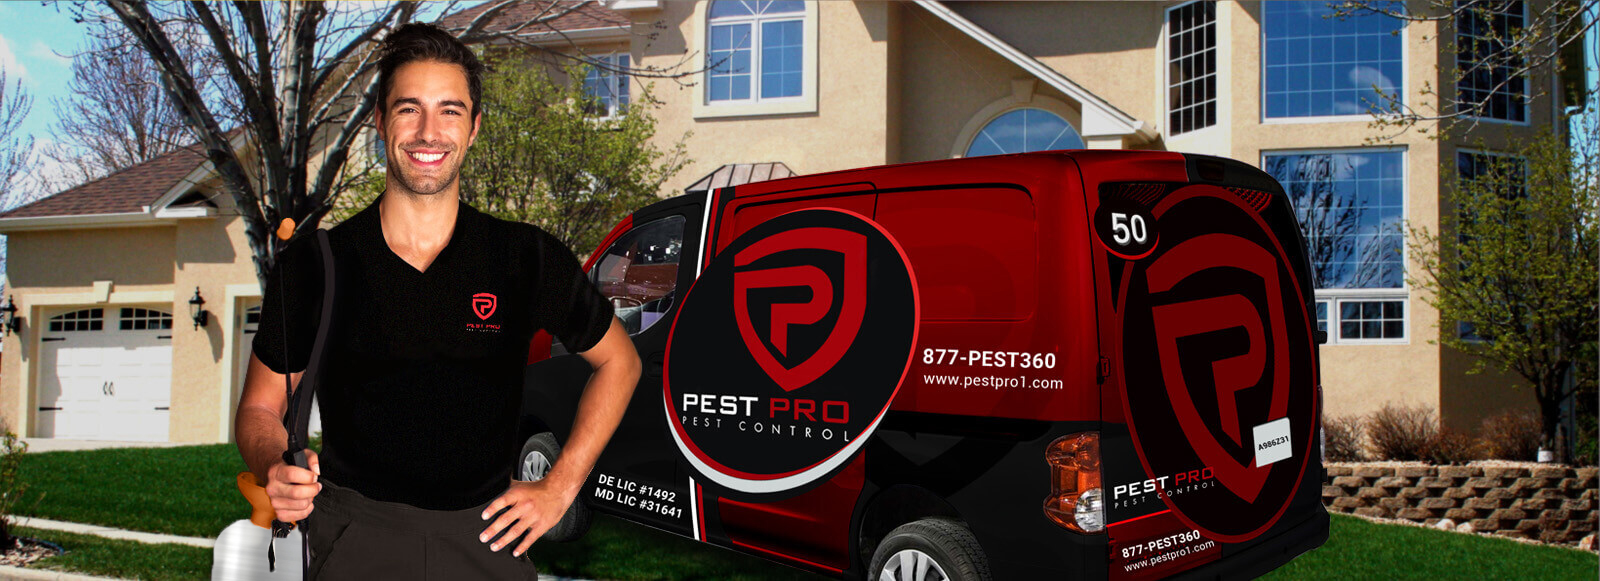 Pest Control Company in Delaware Image